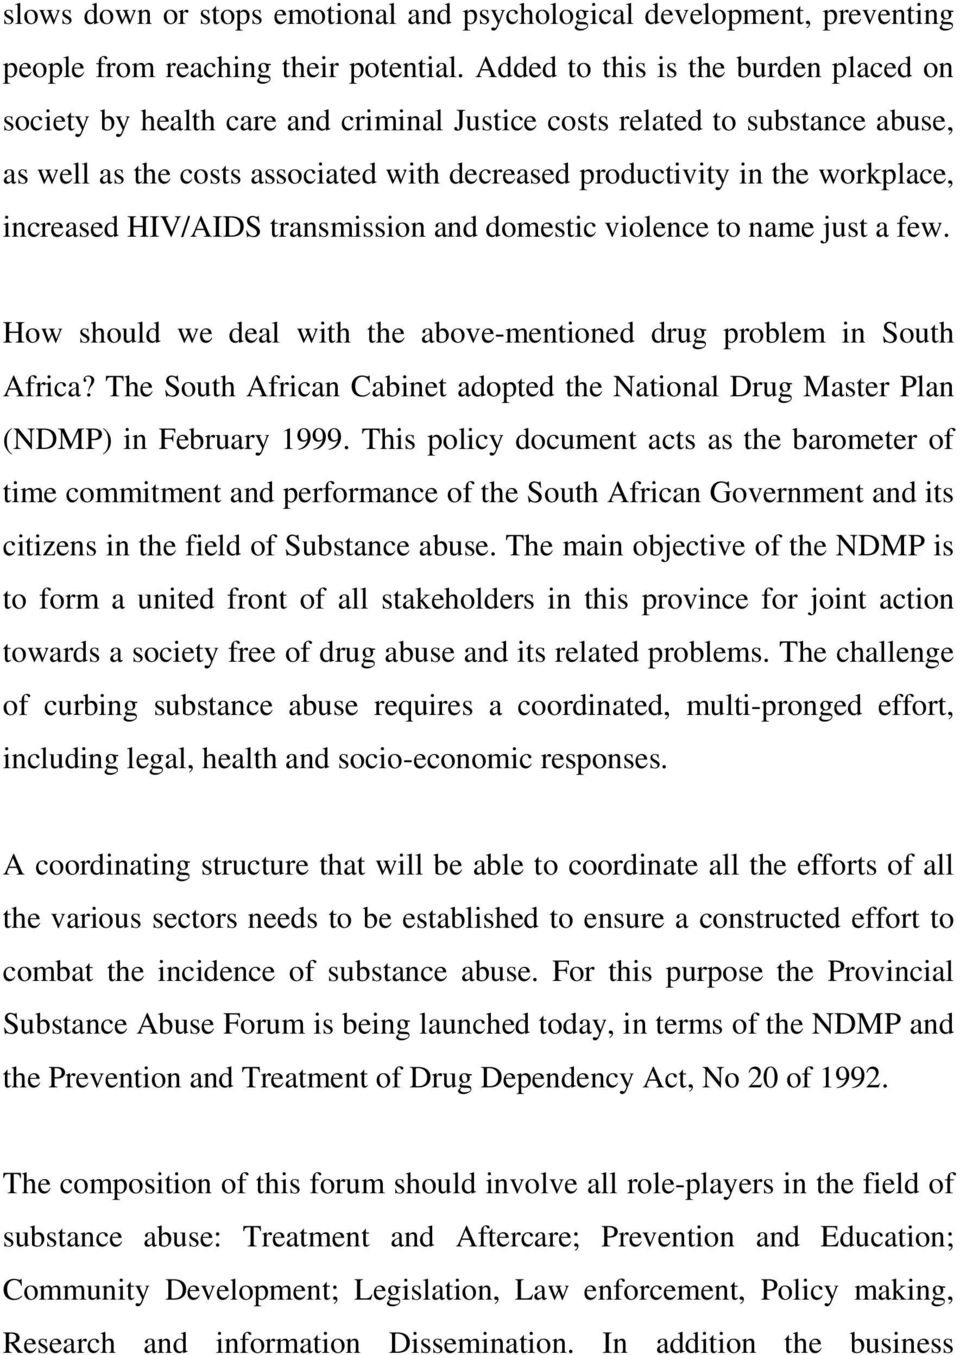 increased HIV/AIDS transmission and domestic violence to name just a few. How should we deal with the above-mentioned drug problem in South Africa?